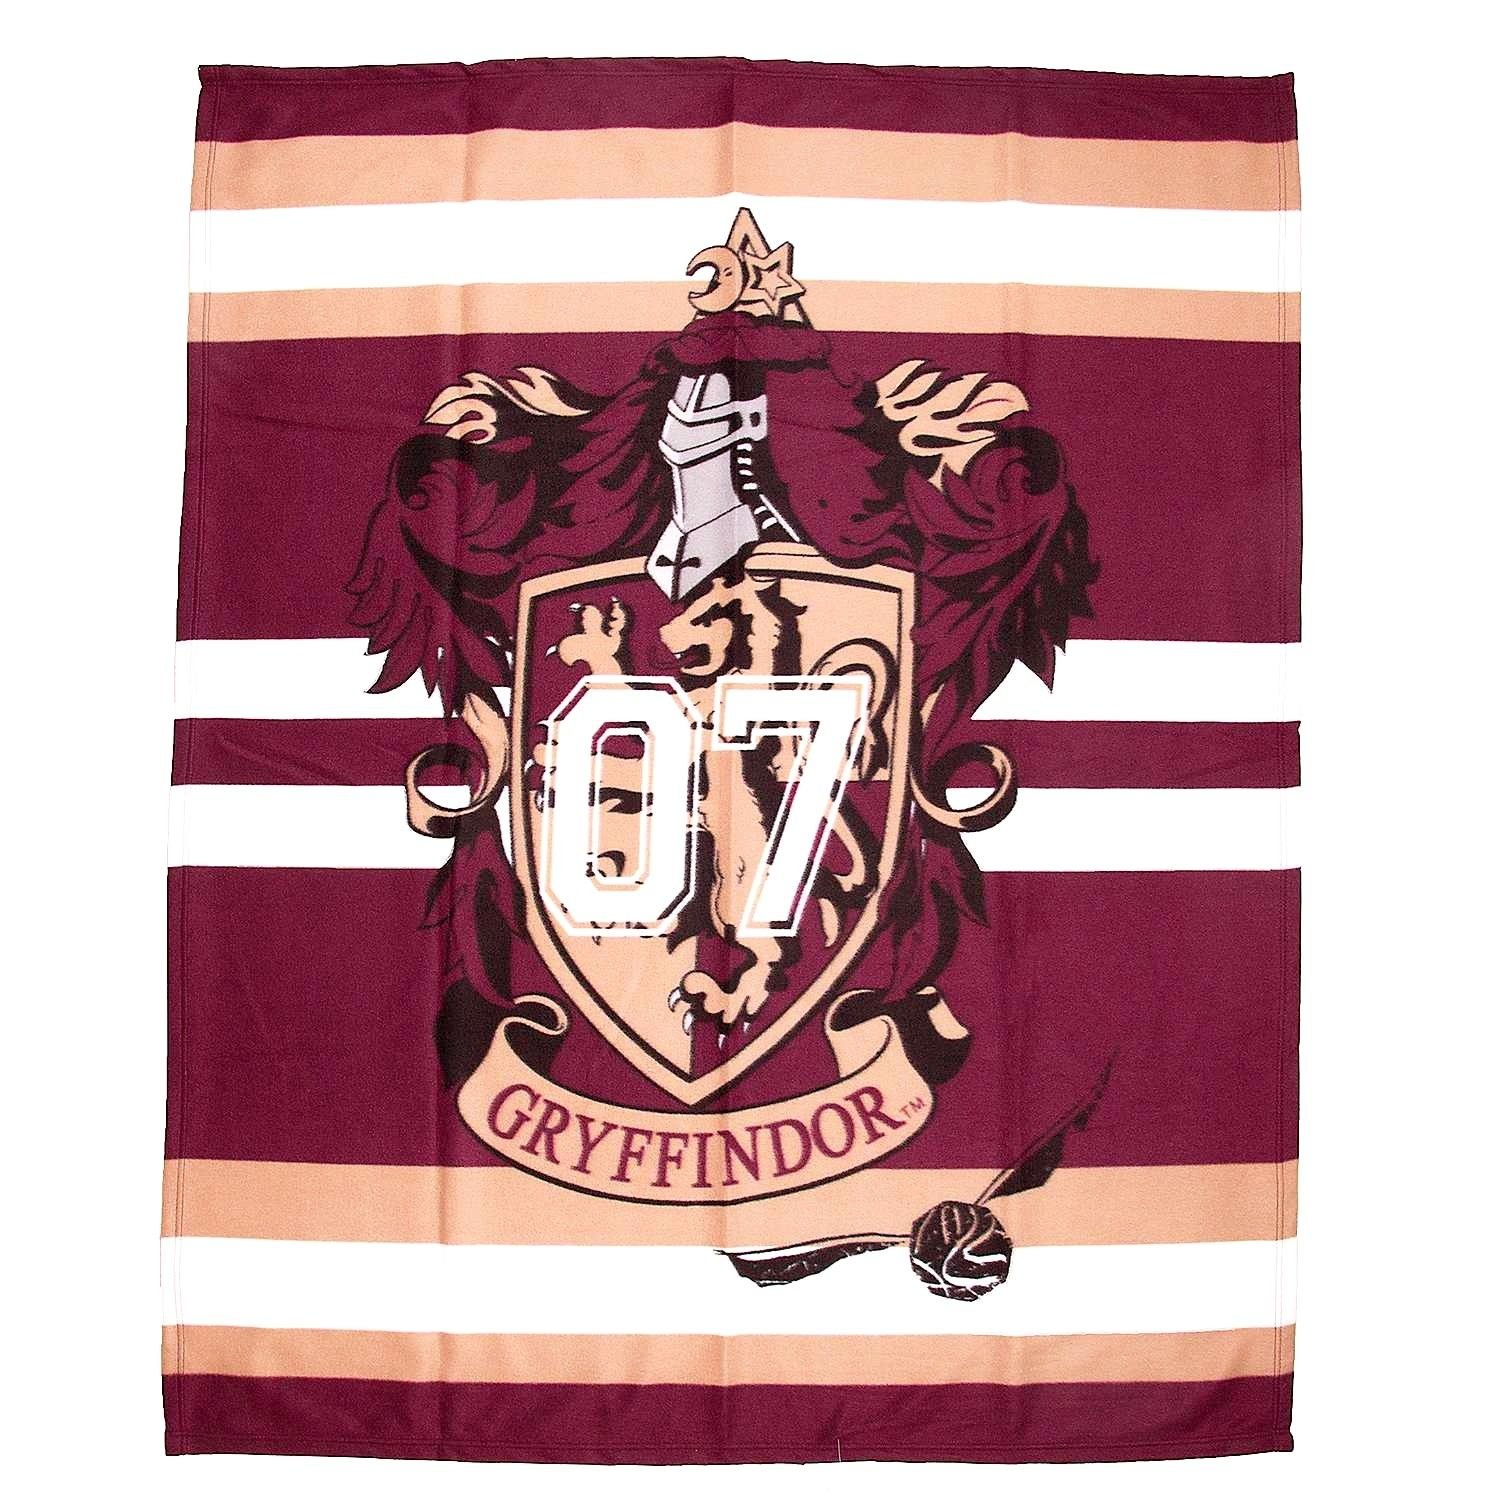 HARRY POTTER Fleece Blanket Muggles Large Print Hogwarts School Kids Boys Girls (Gryffindor house crest, 100 X 150) Style It Up